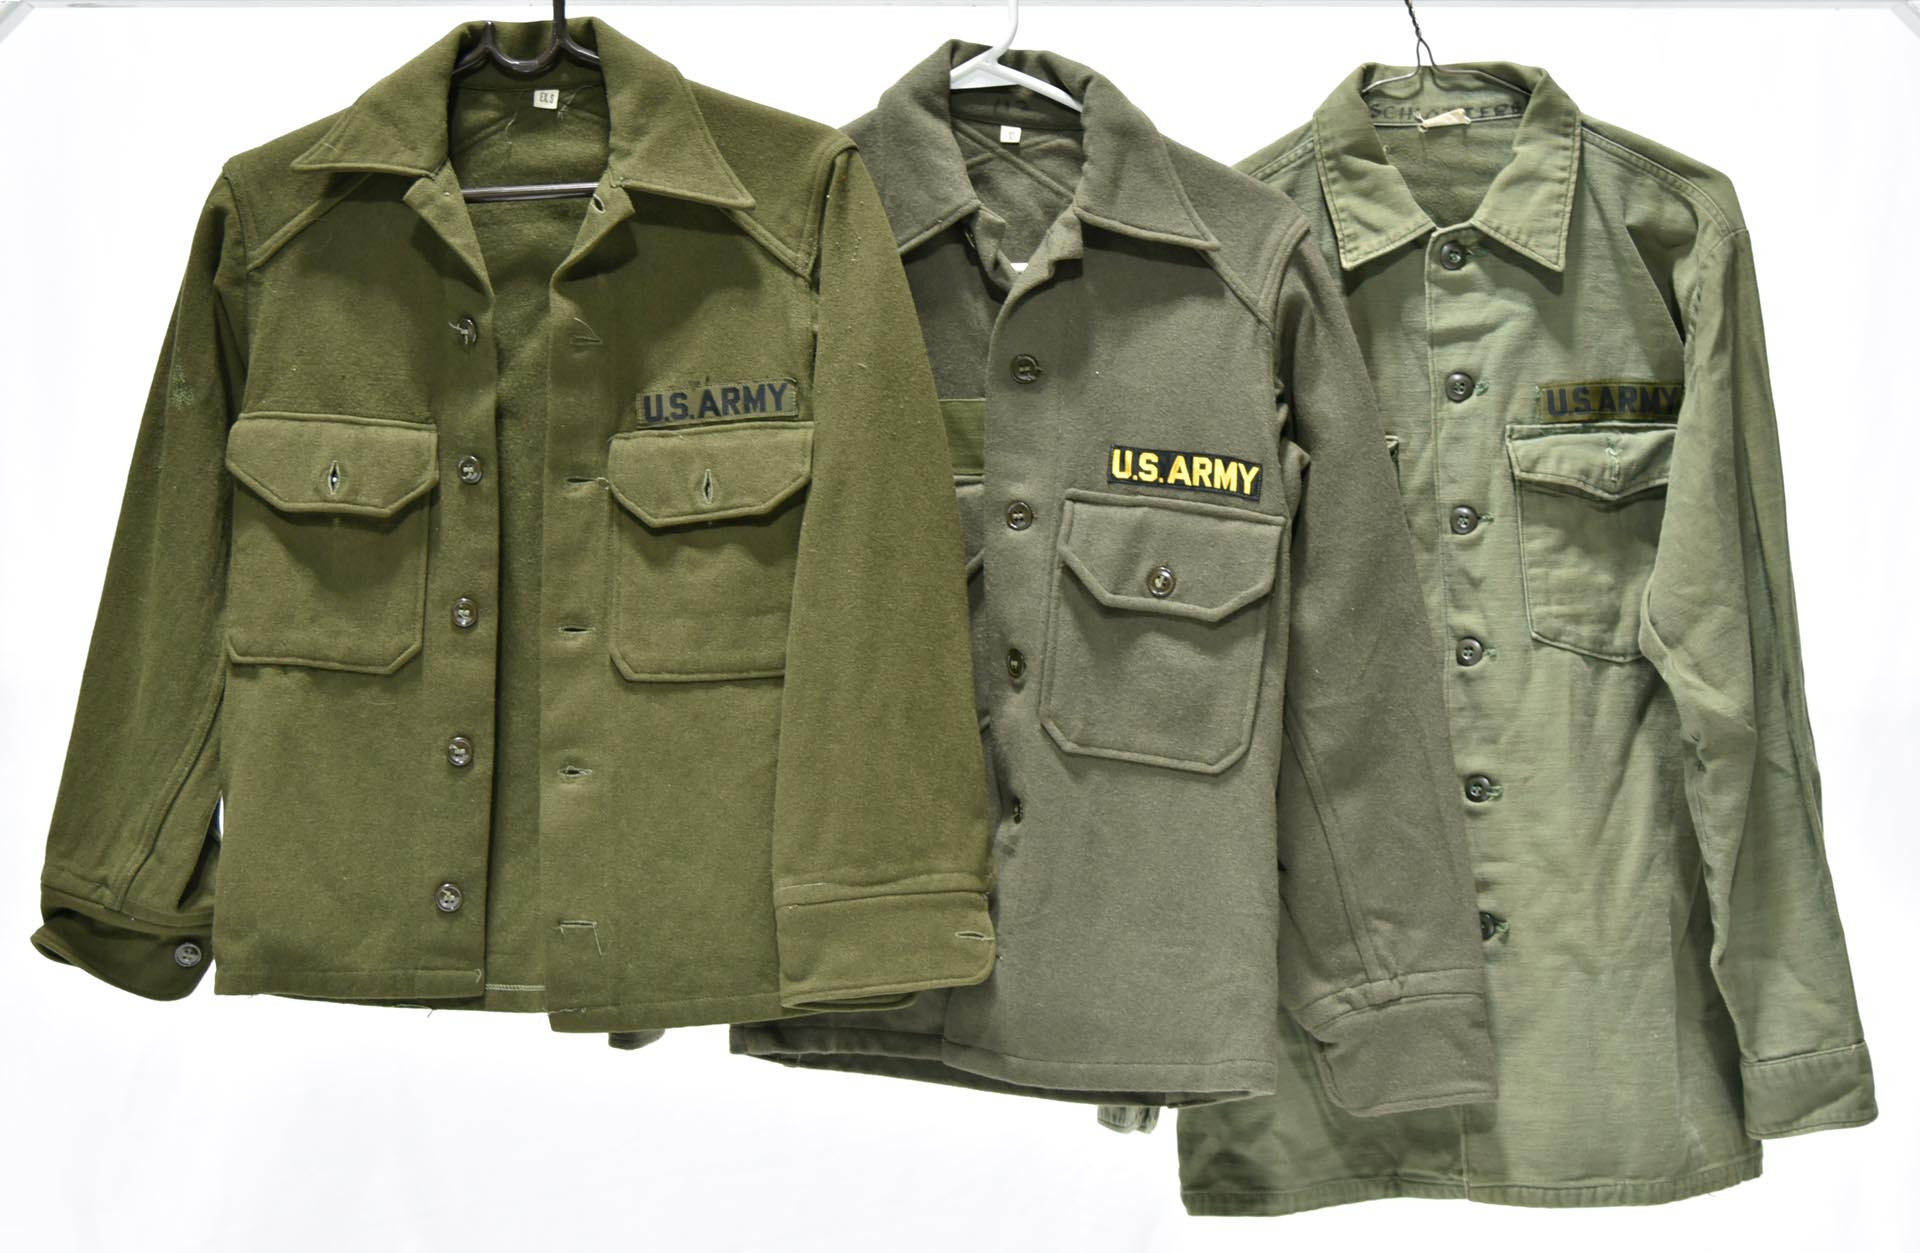 Vintage Original Cold War Military U.S. Army Collection of Service Shirts